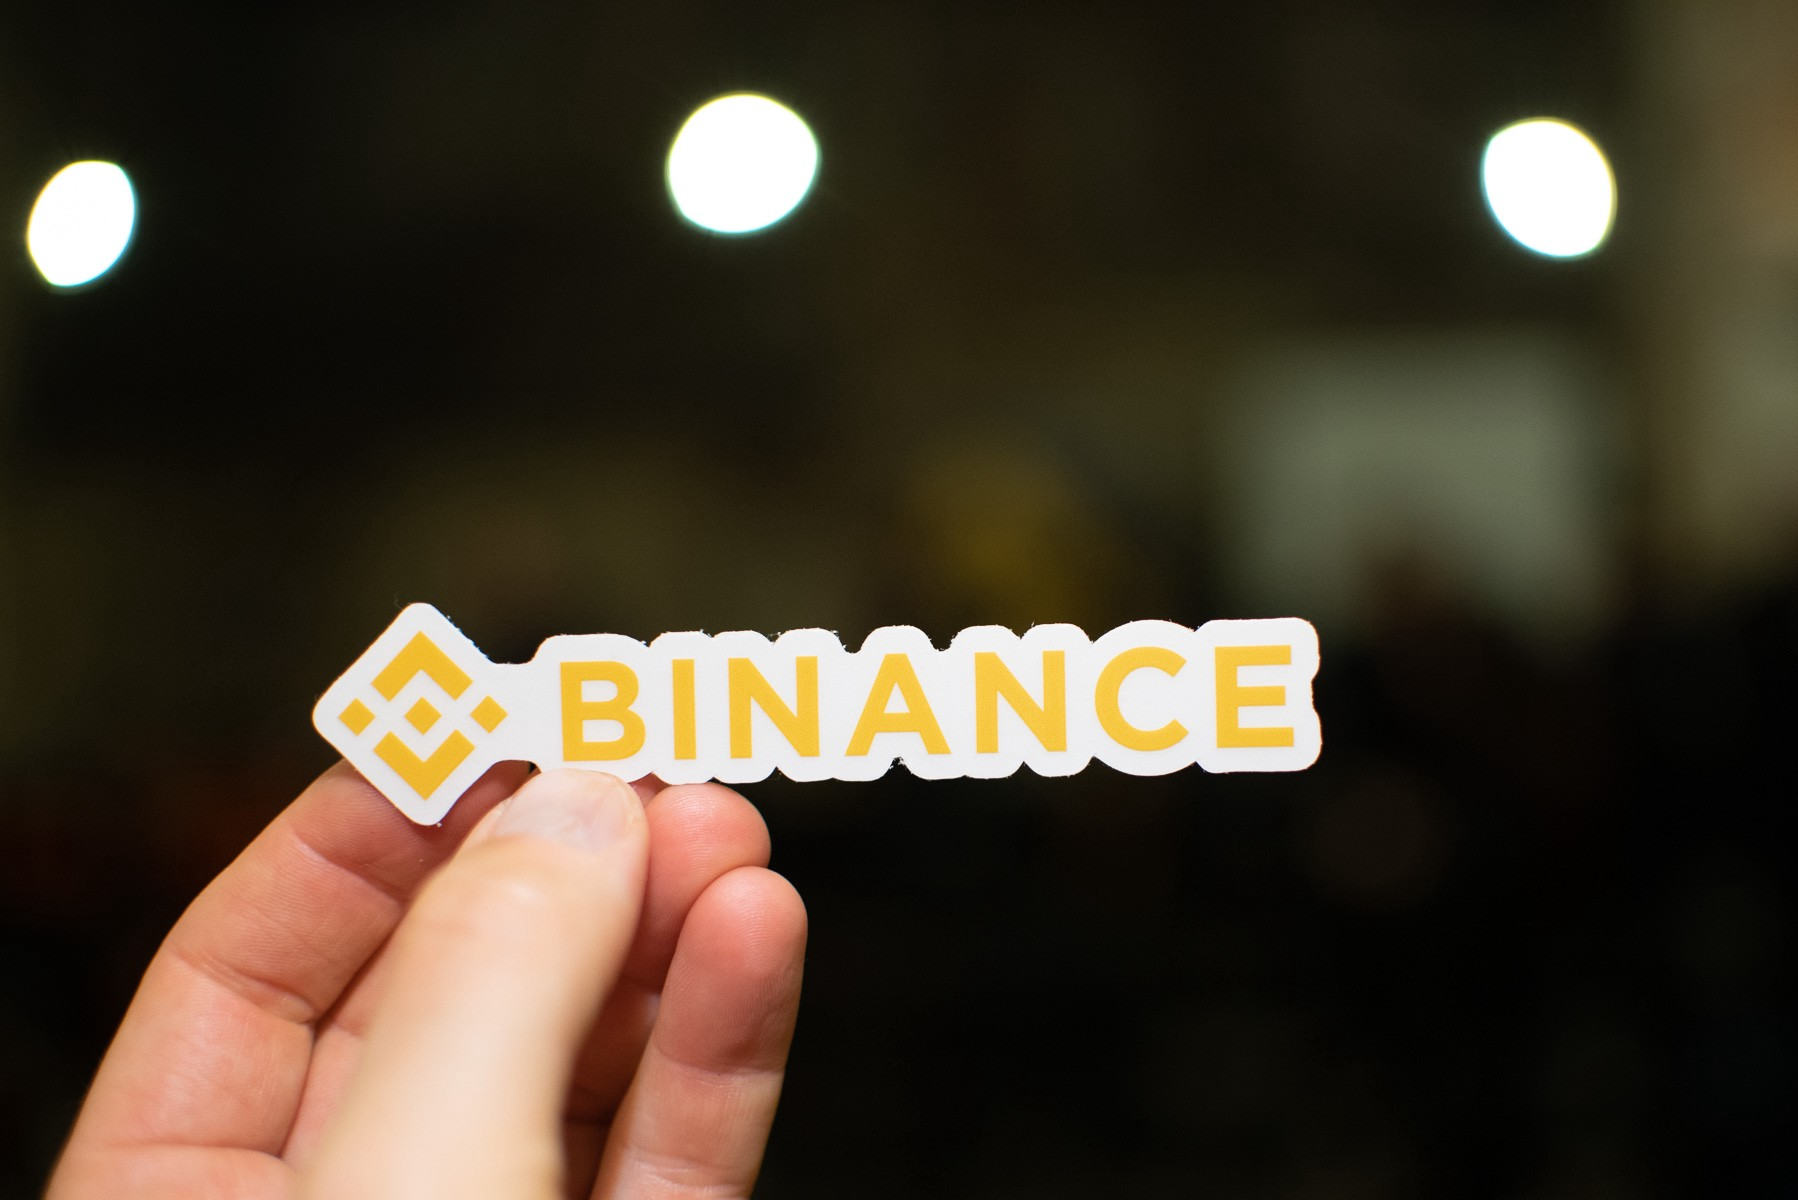 Binance Quietly Launches Ruble Trading for 'Top-10 Market' Russia